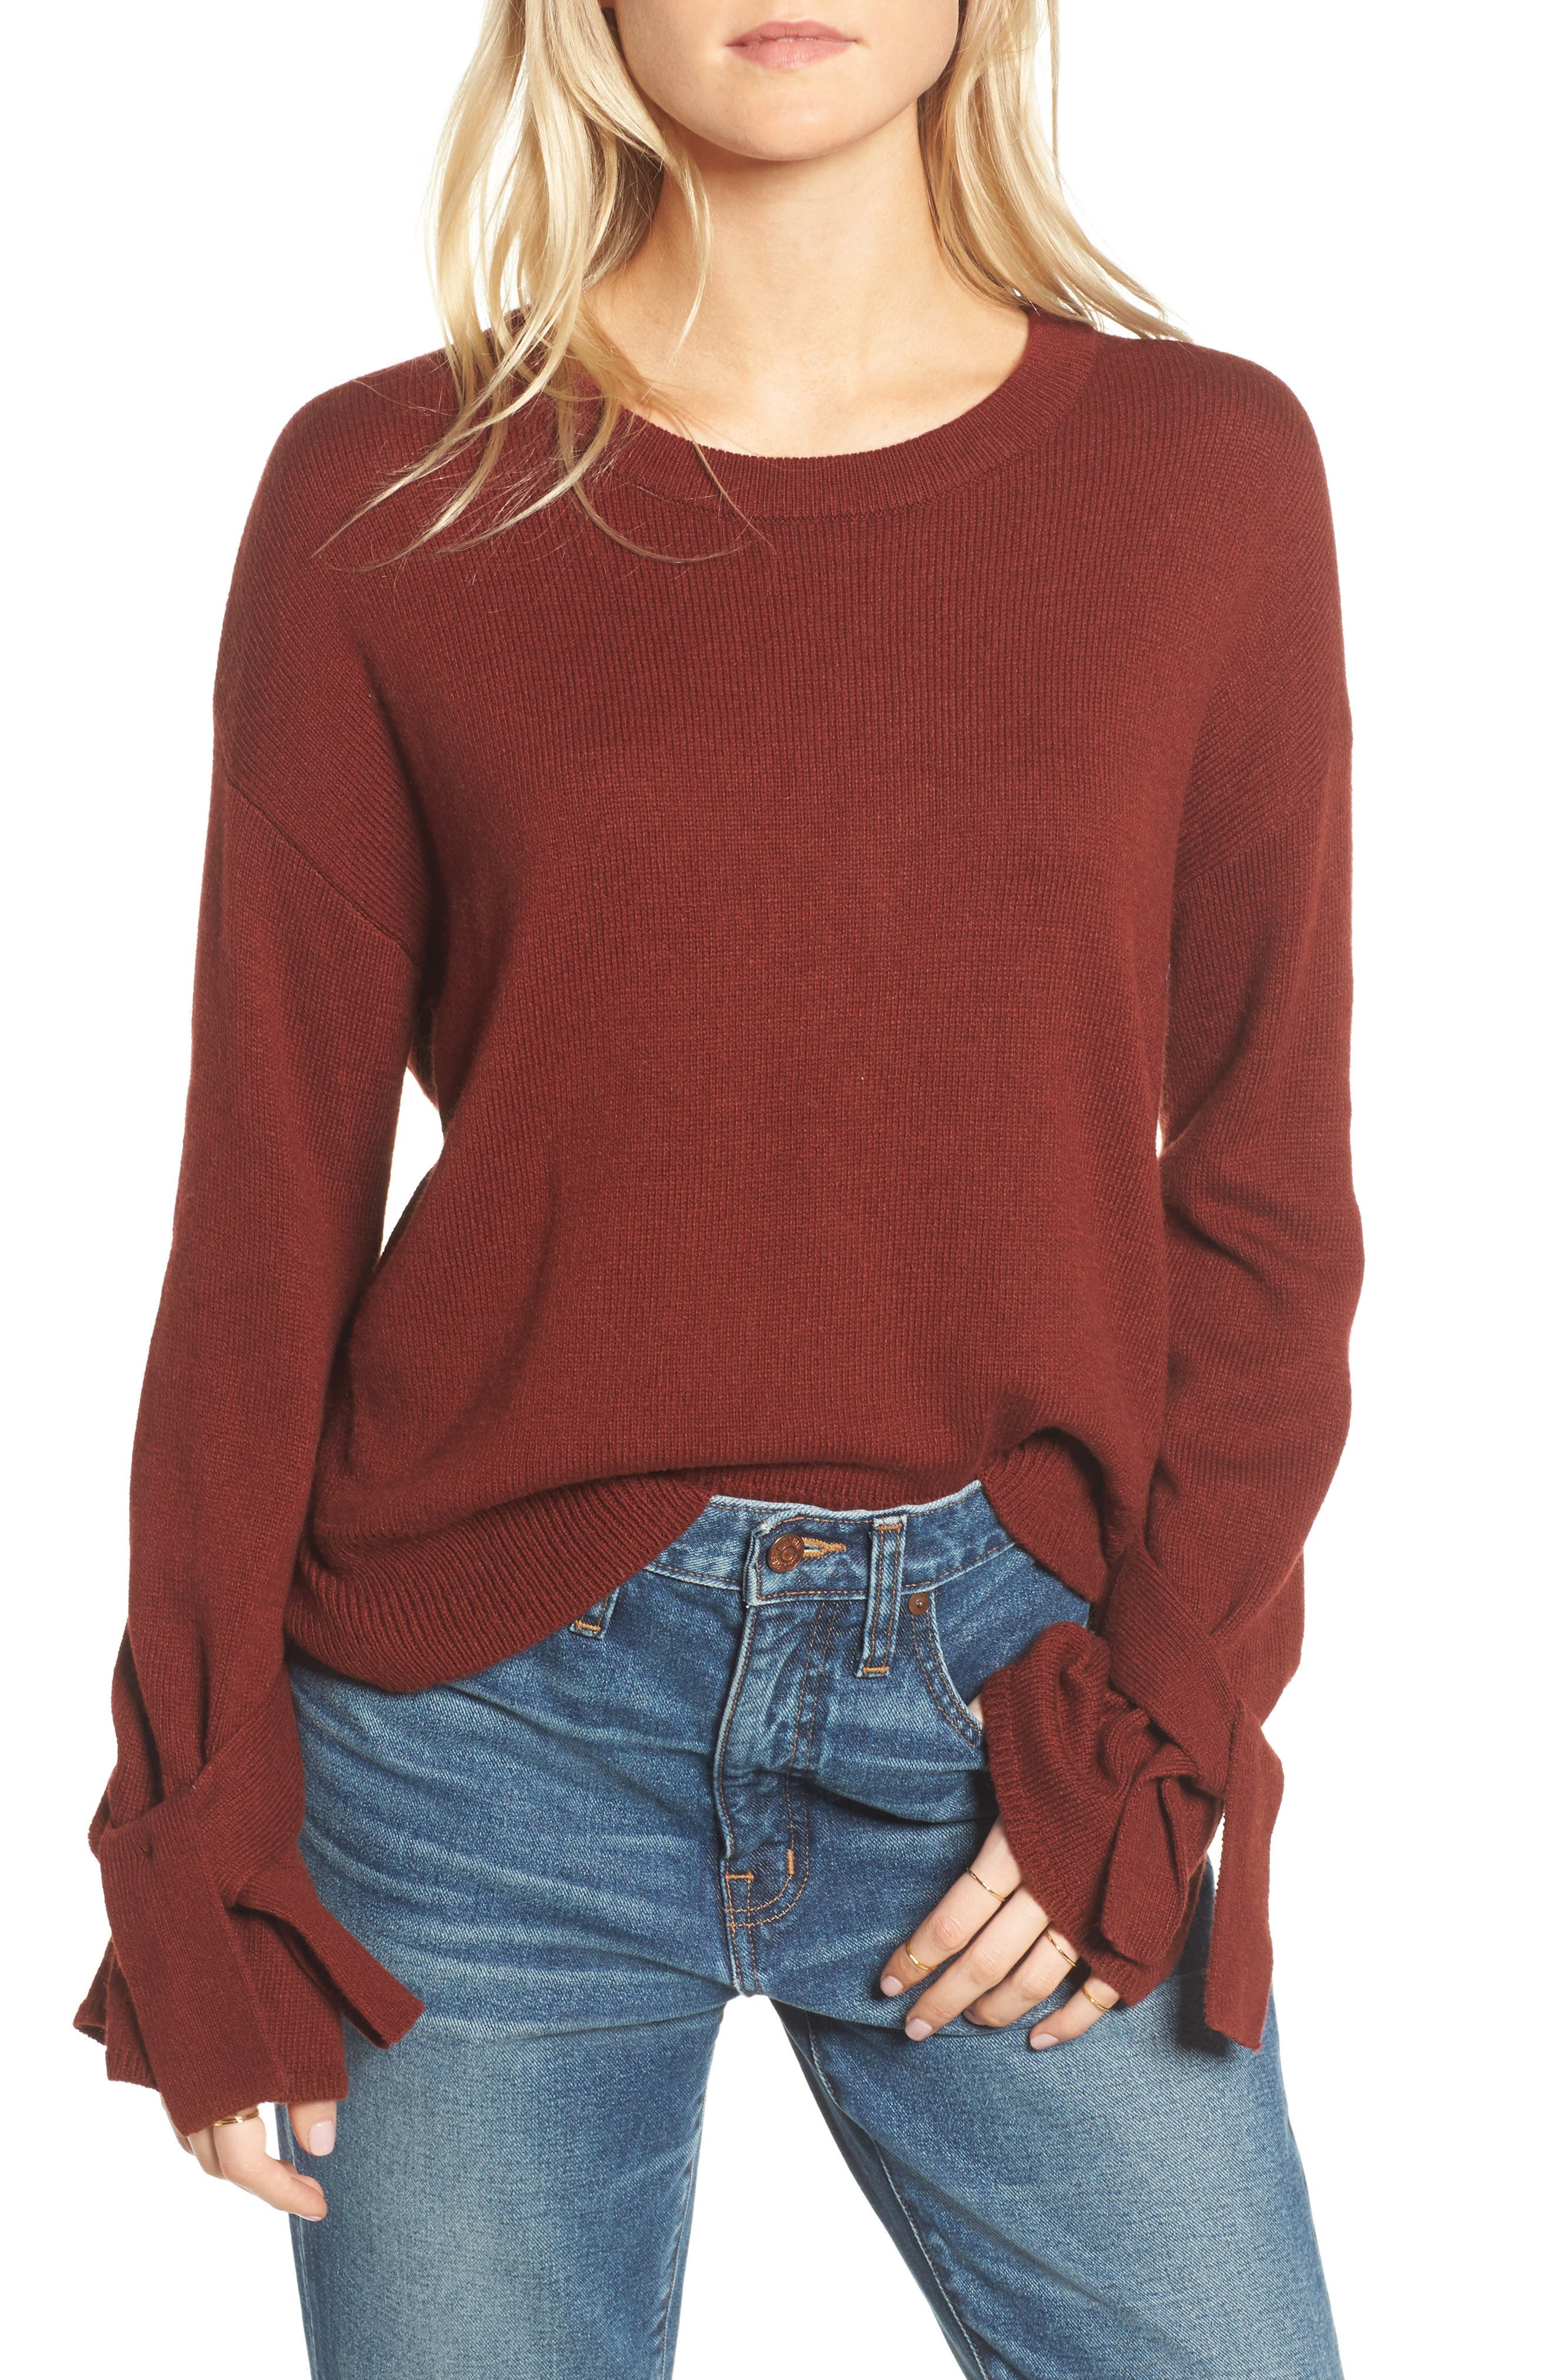 Madewell Women's Red Sweaters Clothing & Accessories | Nordstrom